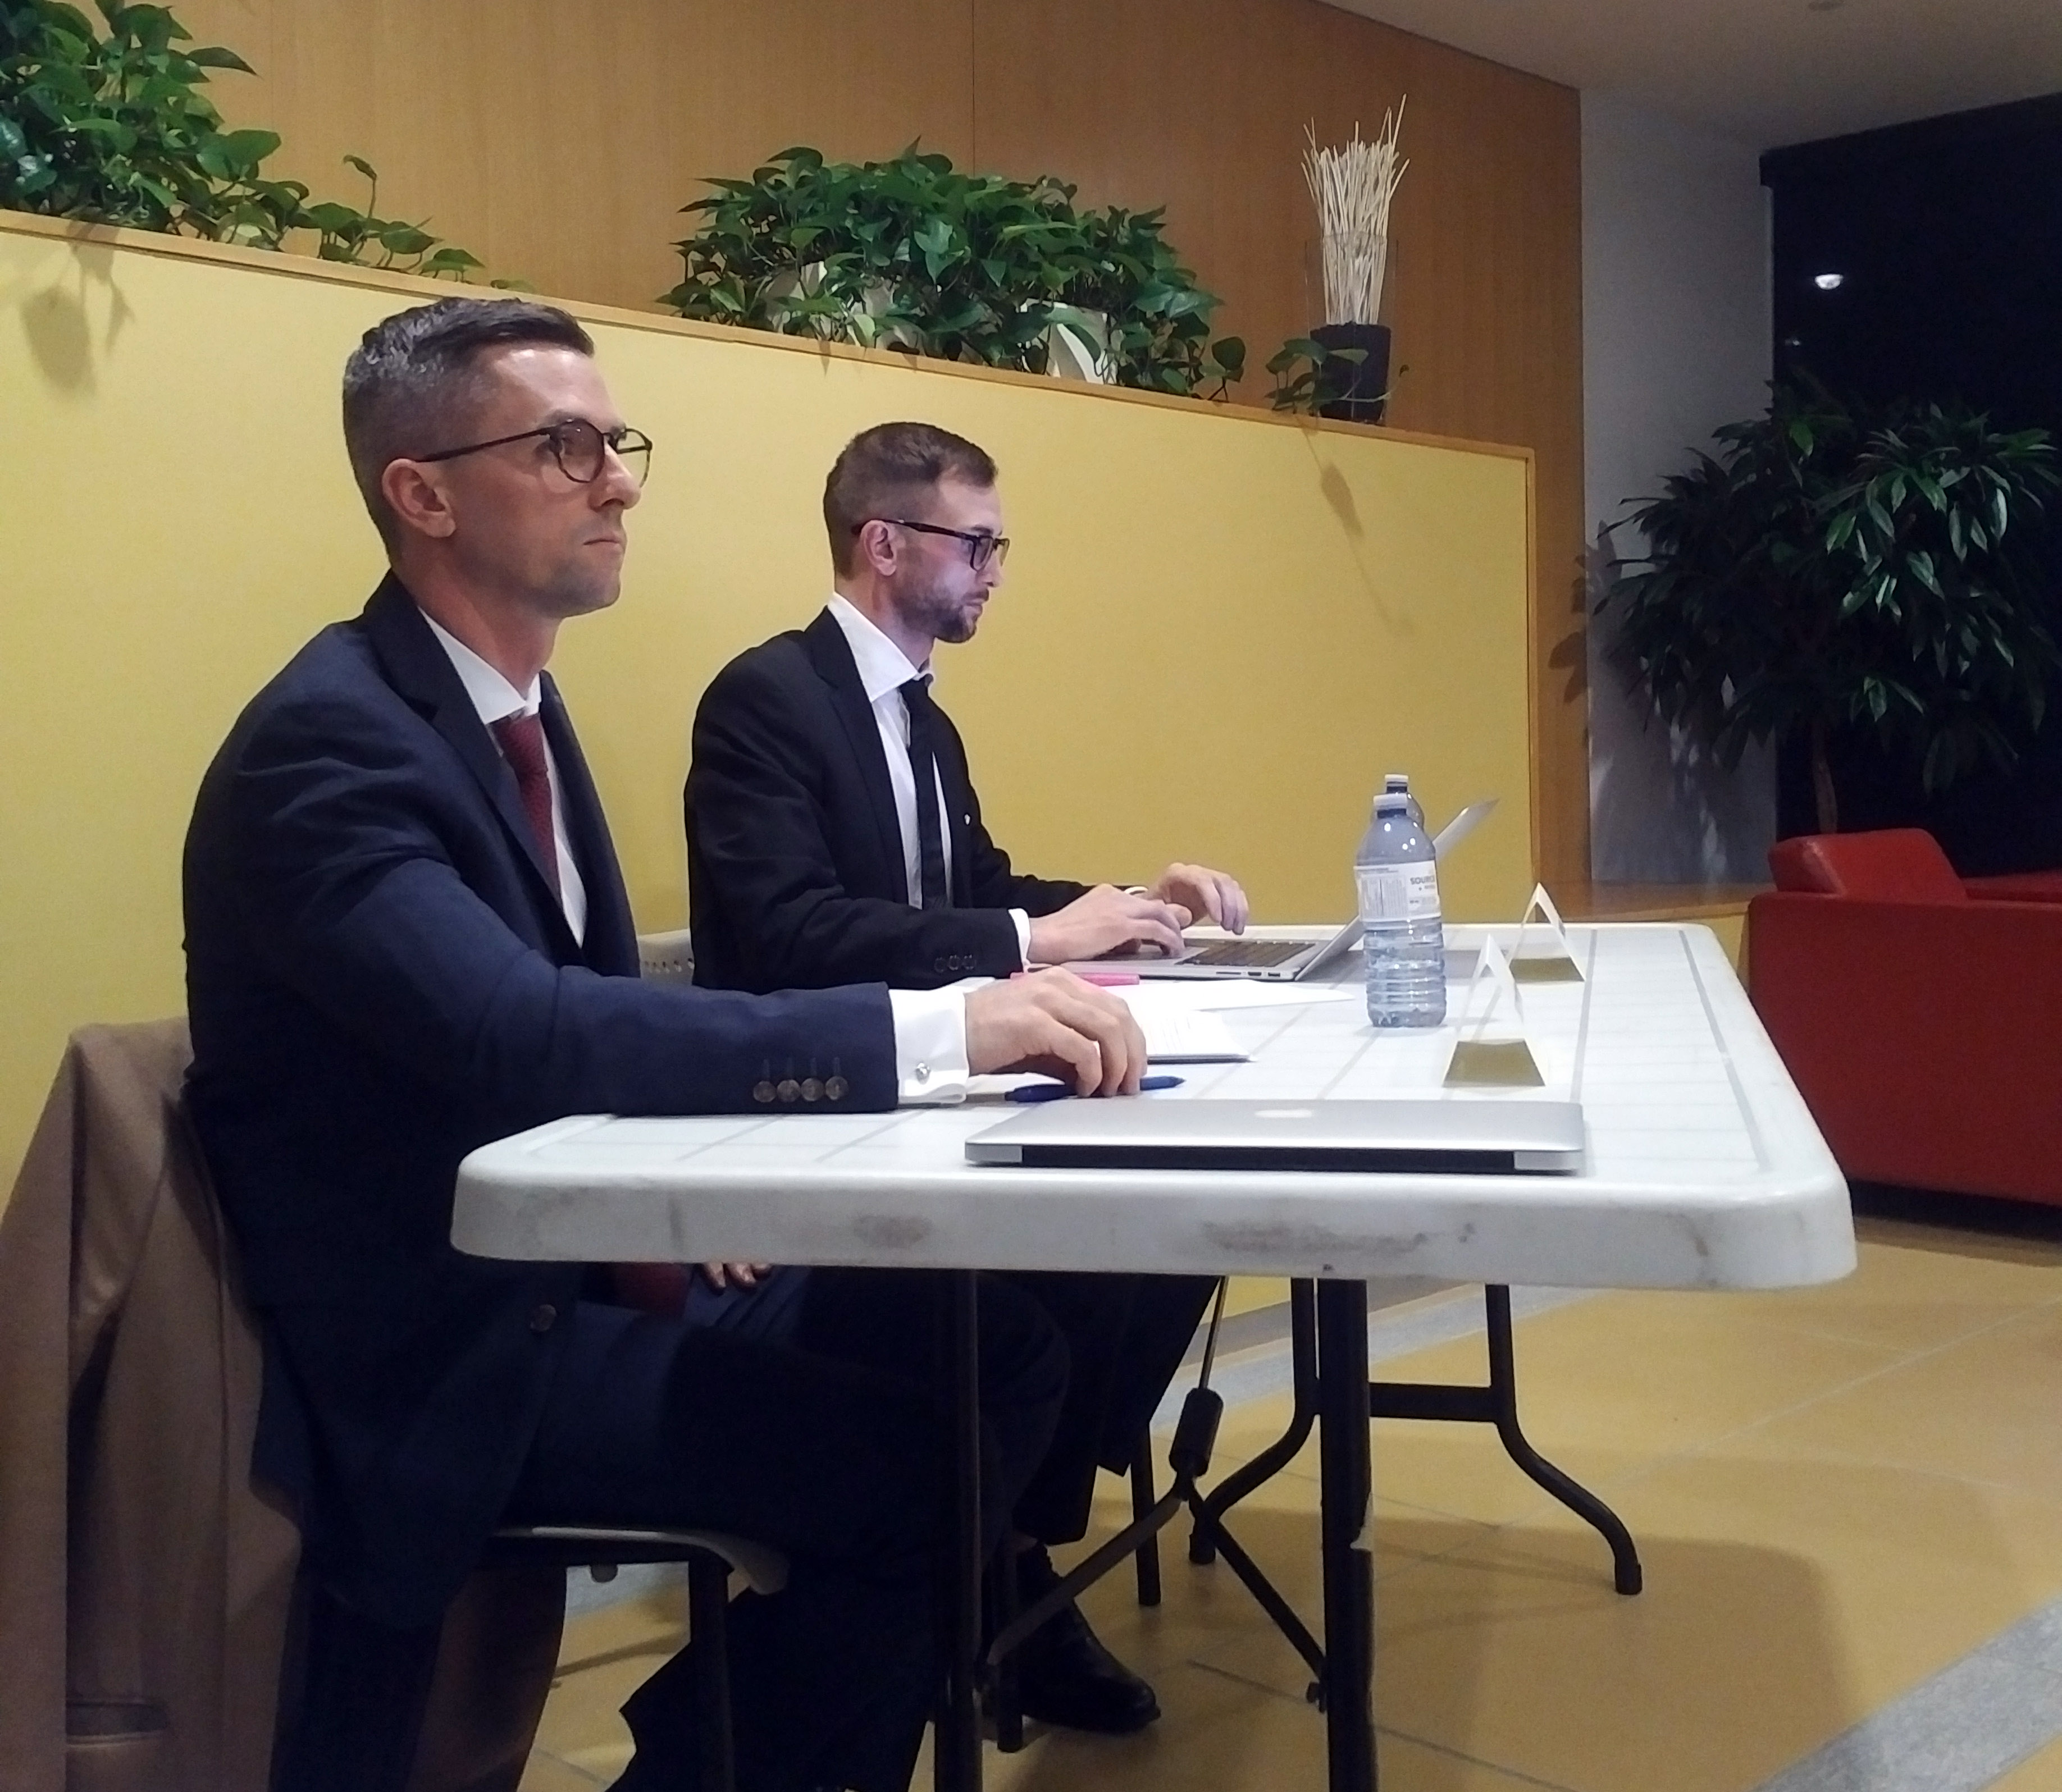 Shawn Meikle and Christopher Sider sit at a table